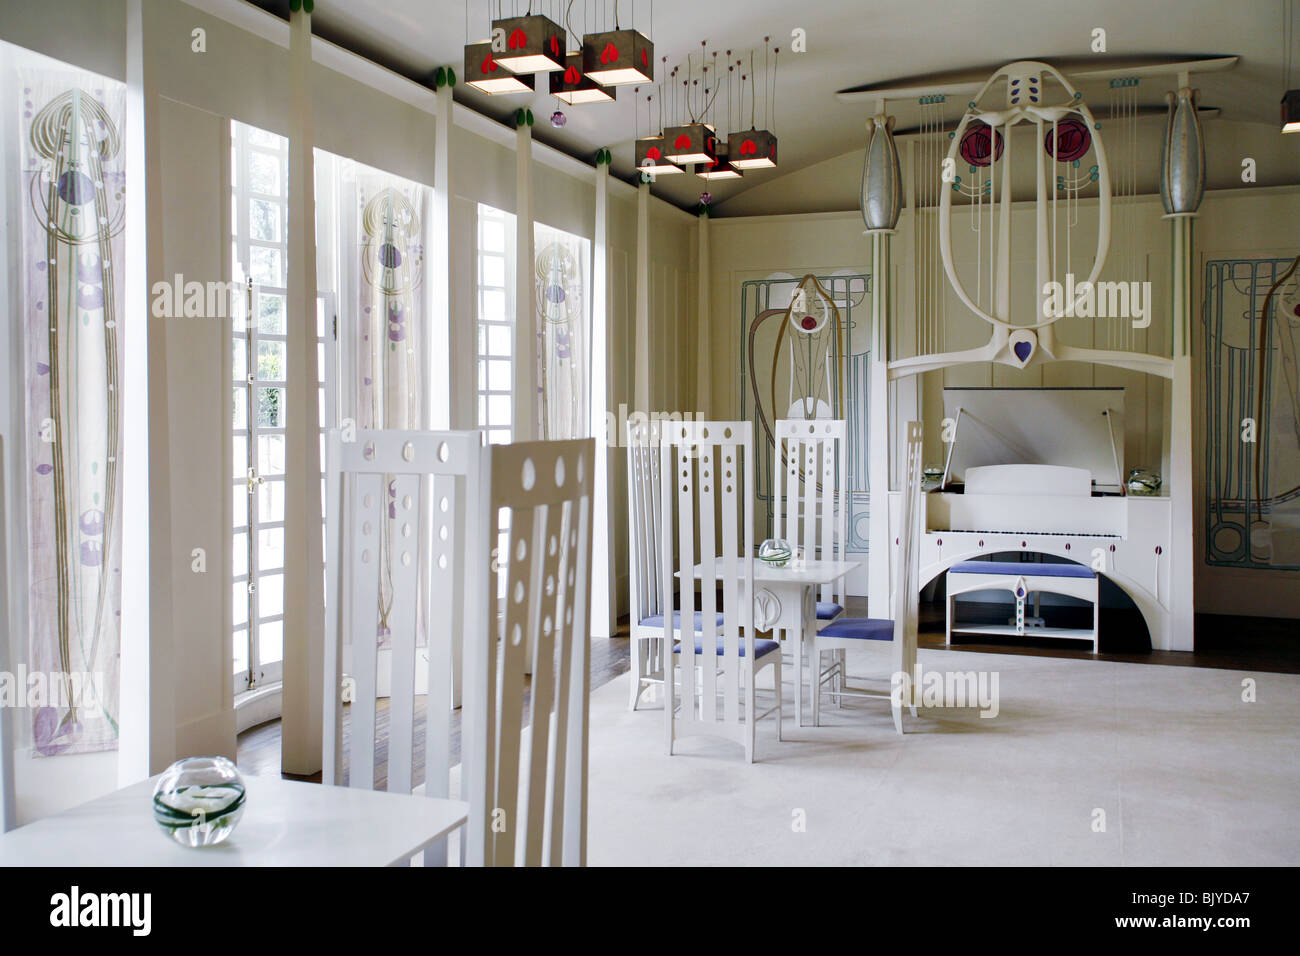 charles rennie mackintosh house for an art lover the music room stock photo 28877359 alamy. Black Bedroom Furniture Sets. Home Design Ideas